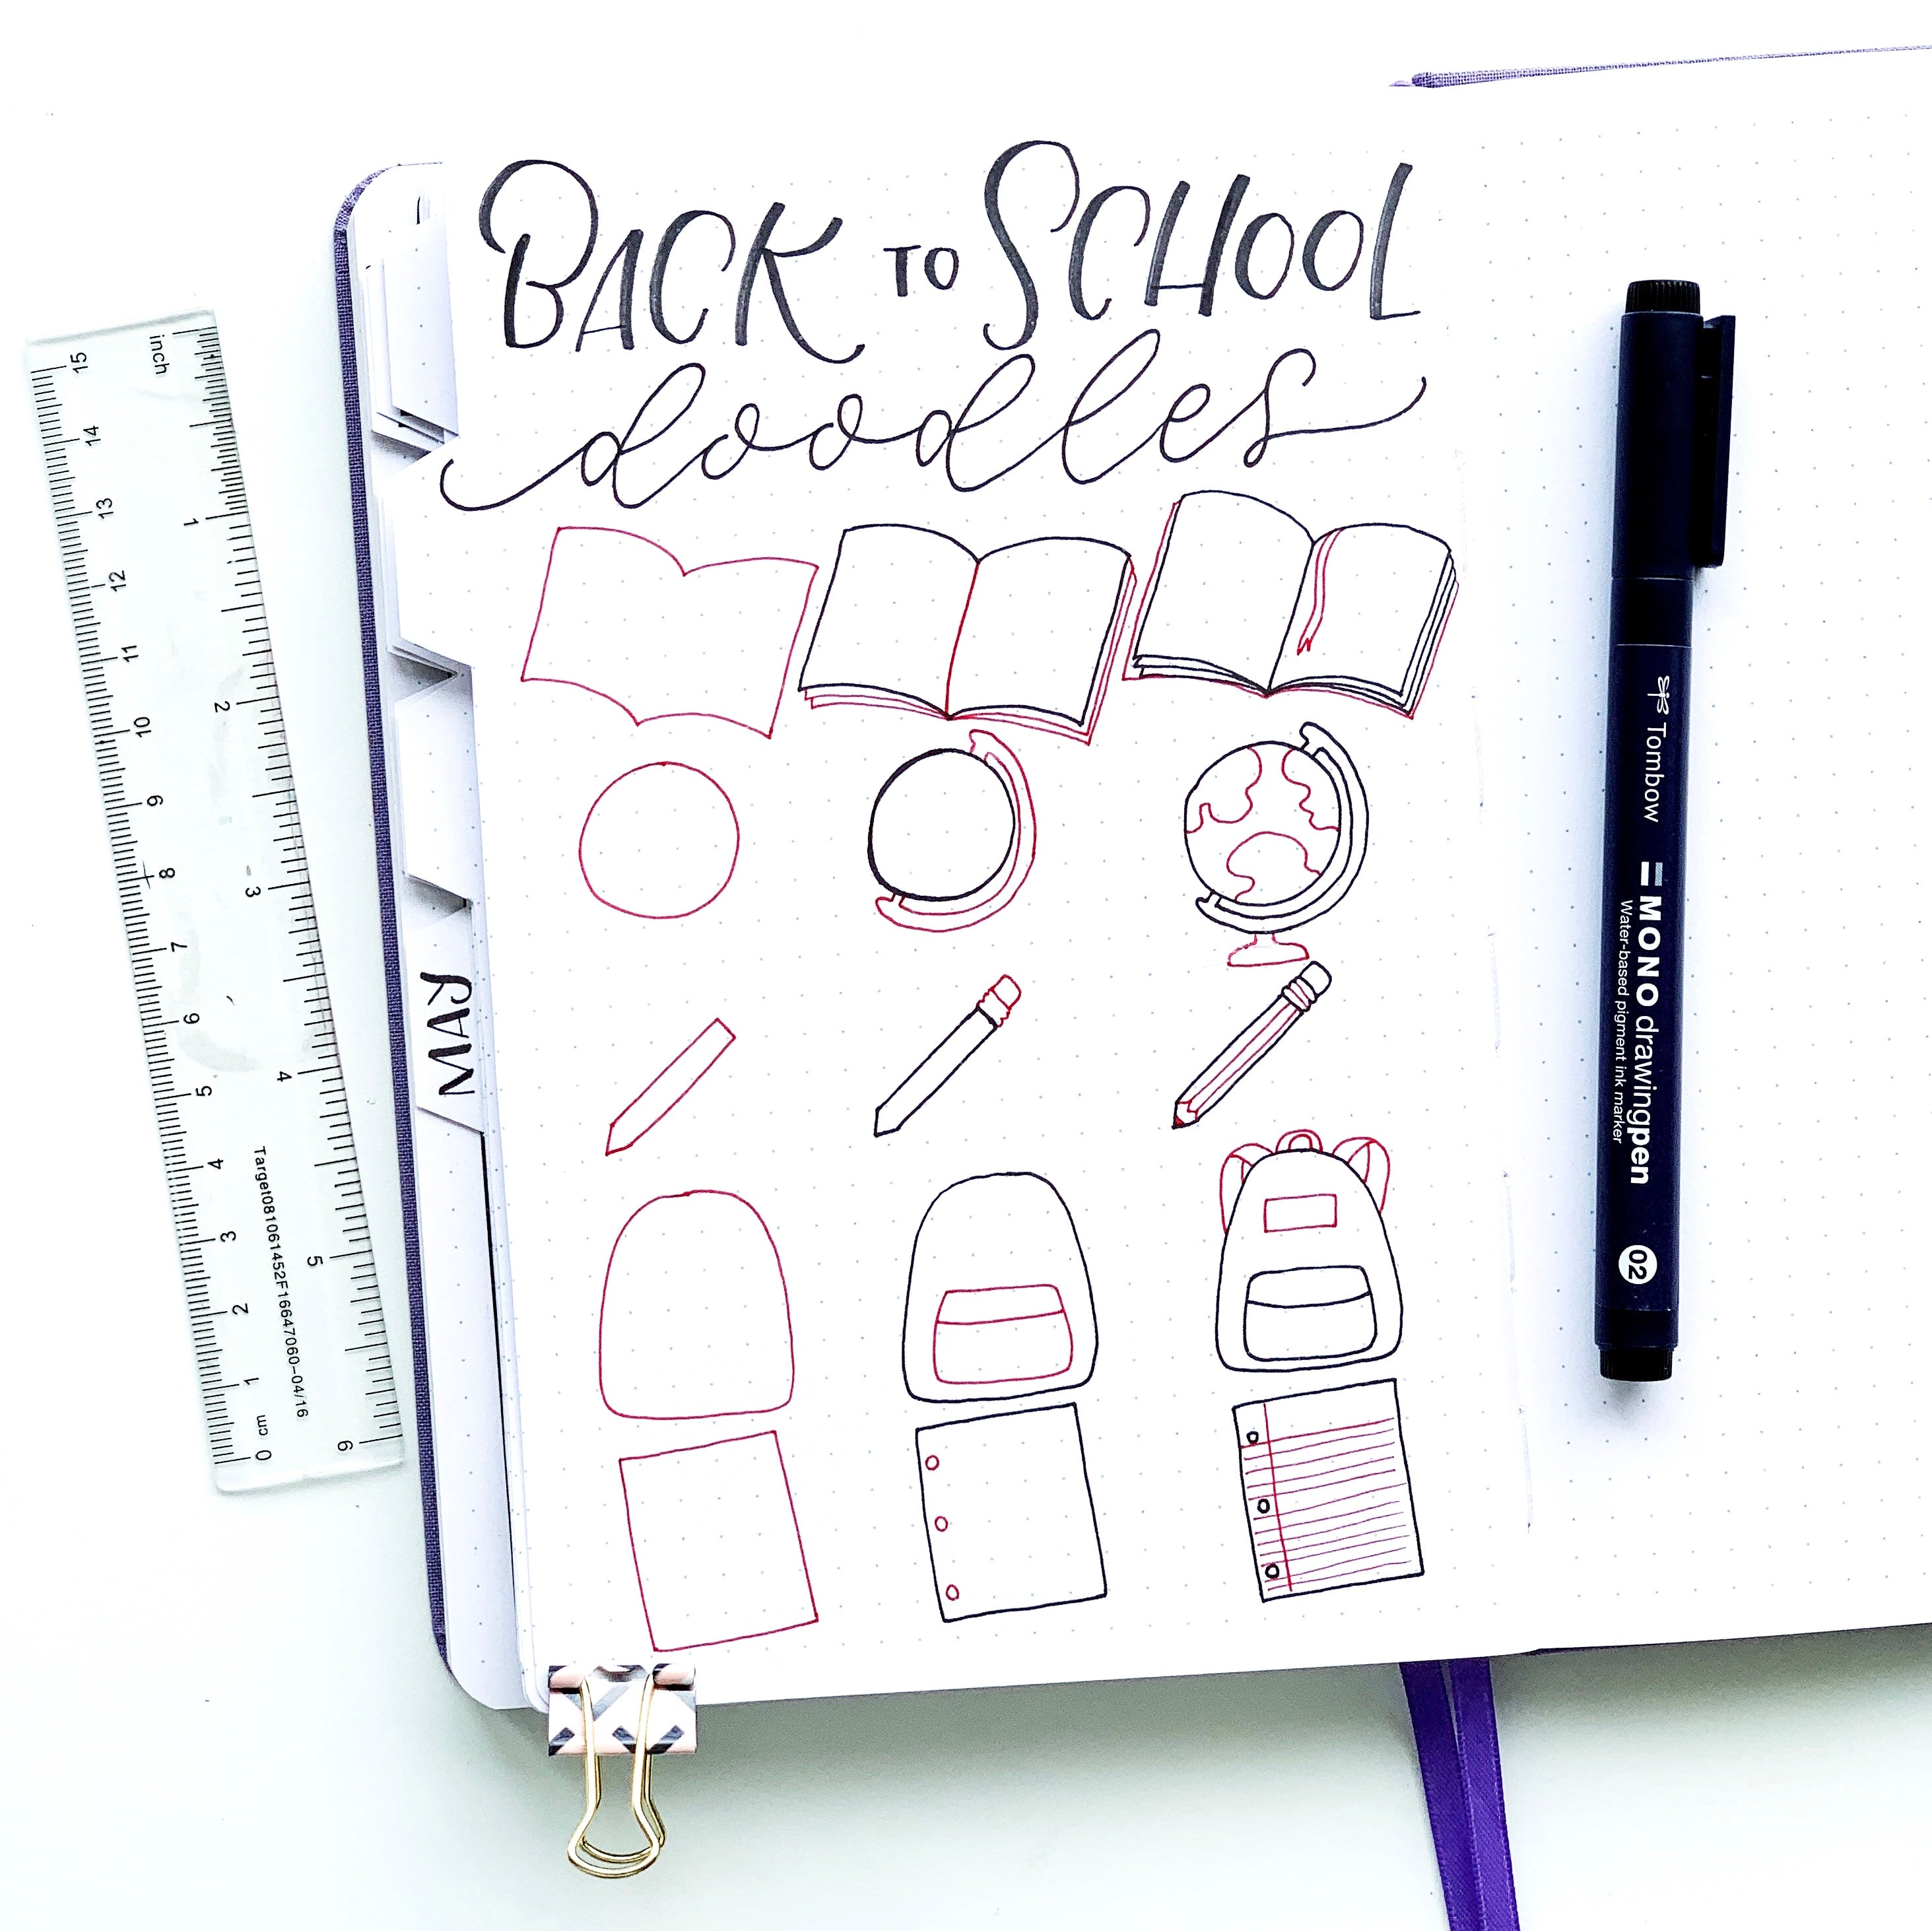 Learn how to draw back-to-school doodles in your notebook with Adrienne from @studio80design!